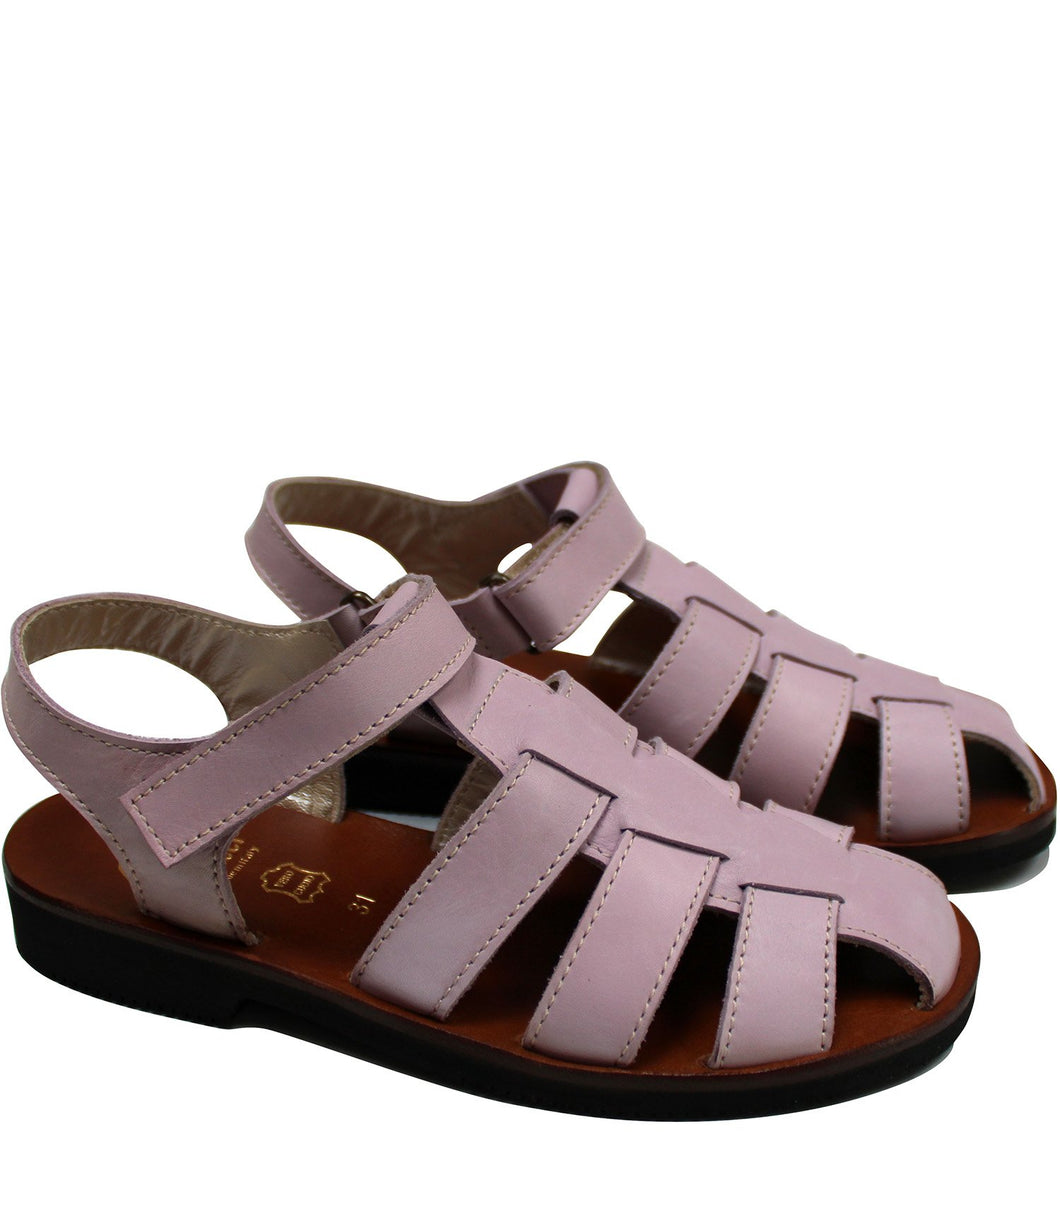 Straps sandals in liliac leather